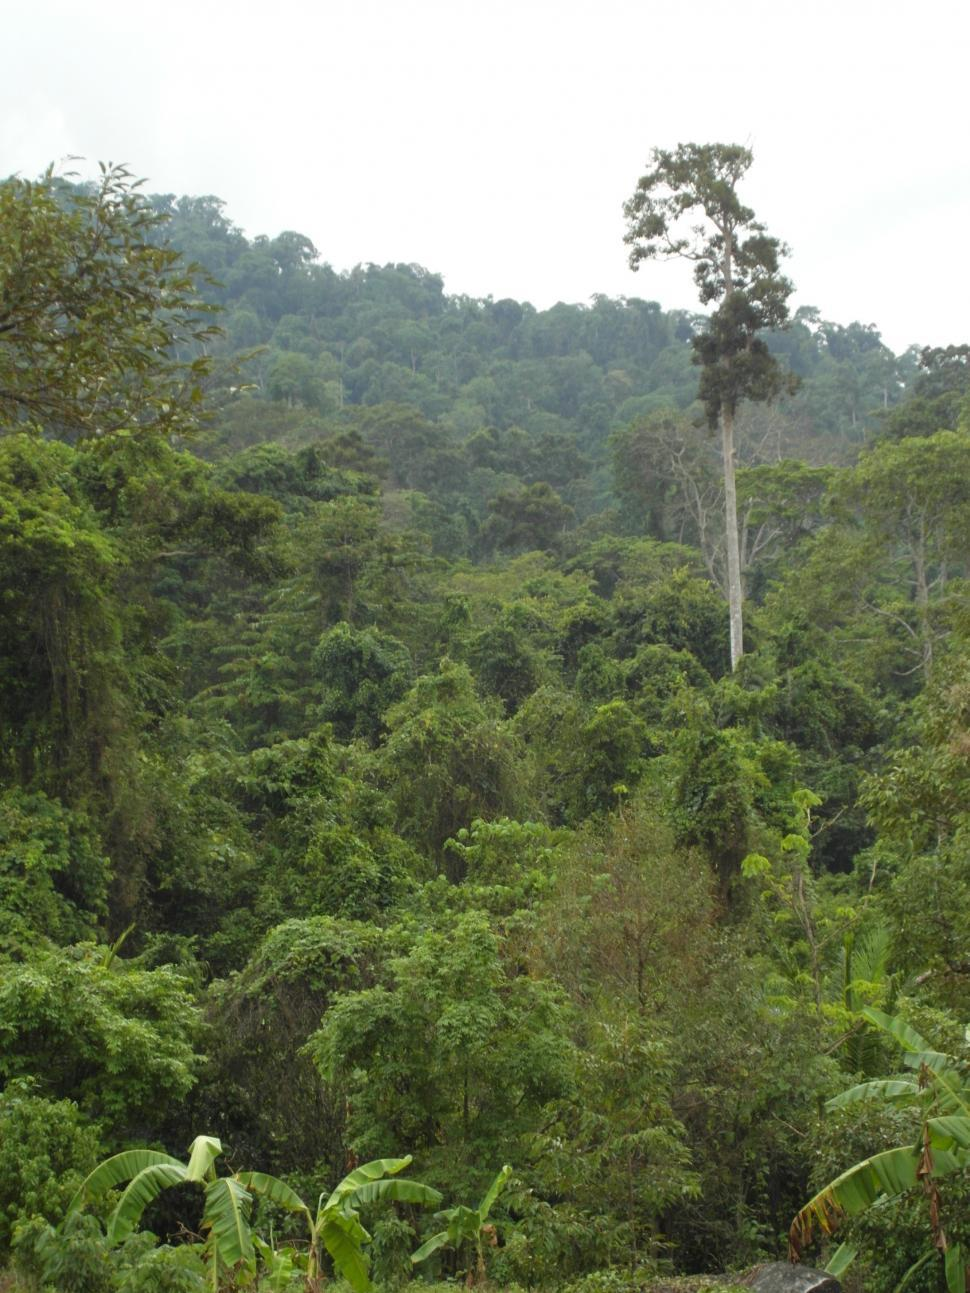 Download Free Stock HD Photo of Jungle / Tropical Rainforest Online